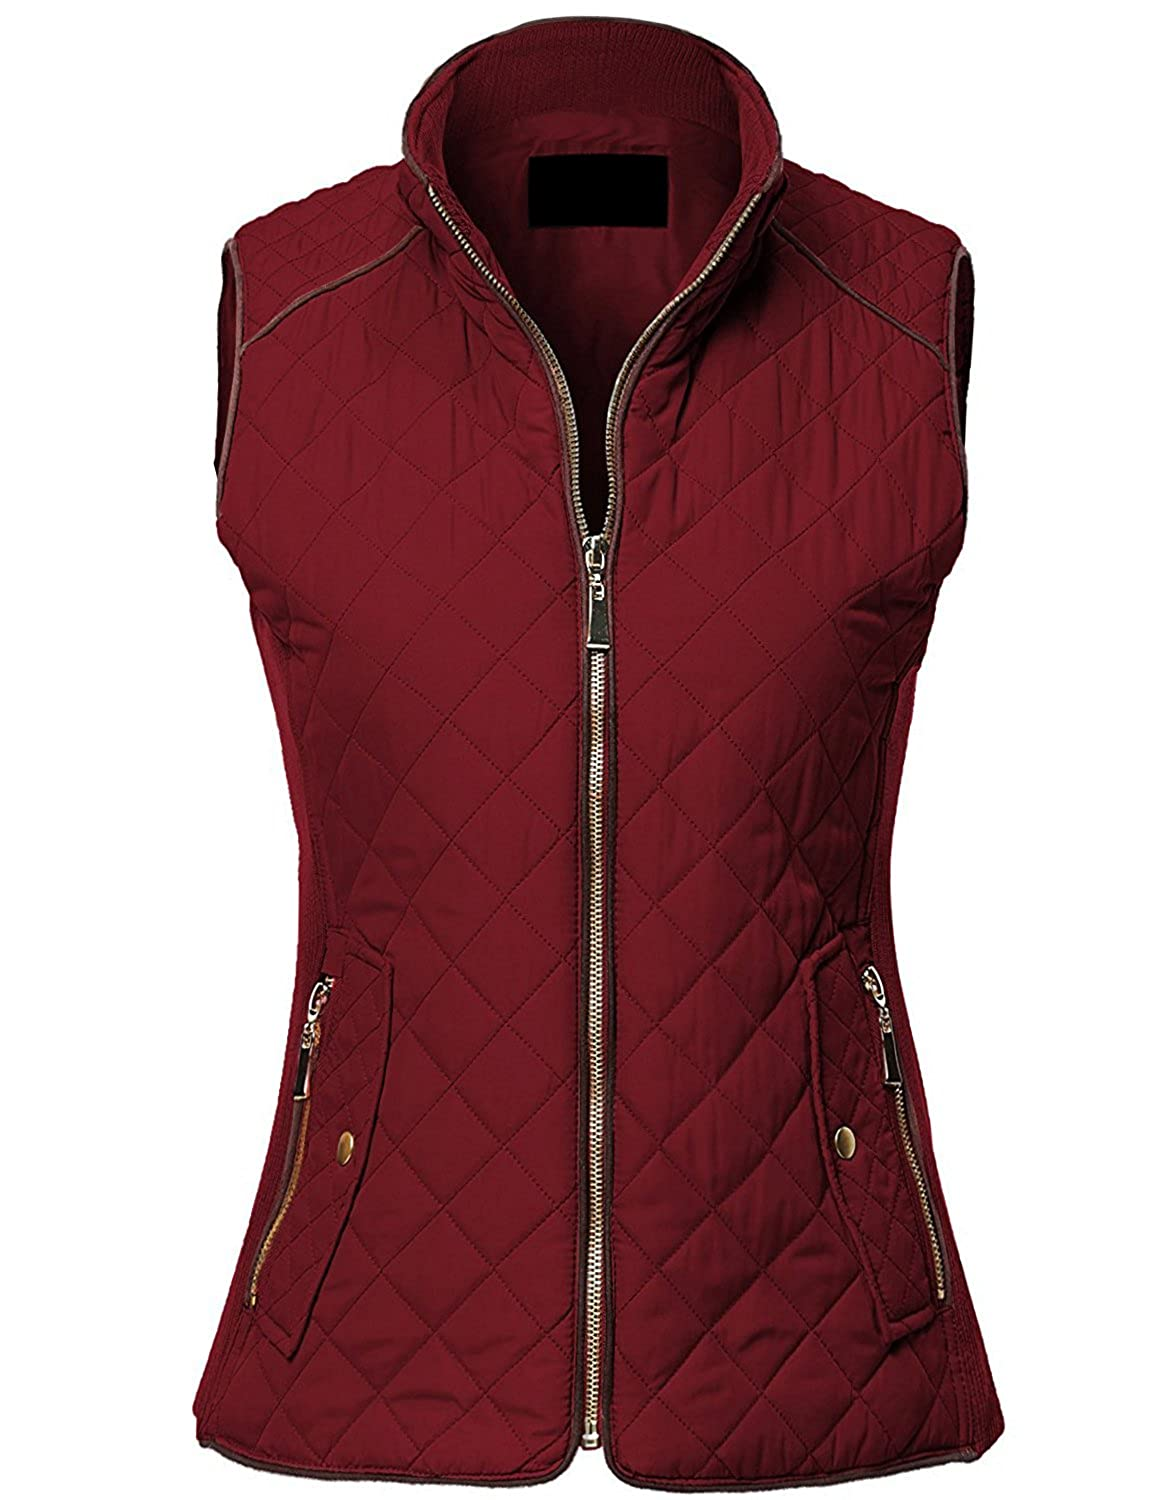 MAYSIX APPAREL Quilted Padding Vest With Suede Piping Details Sizes From S-3XL